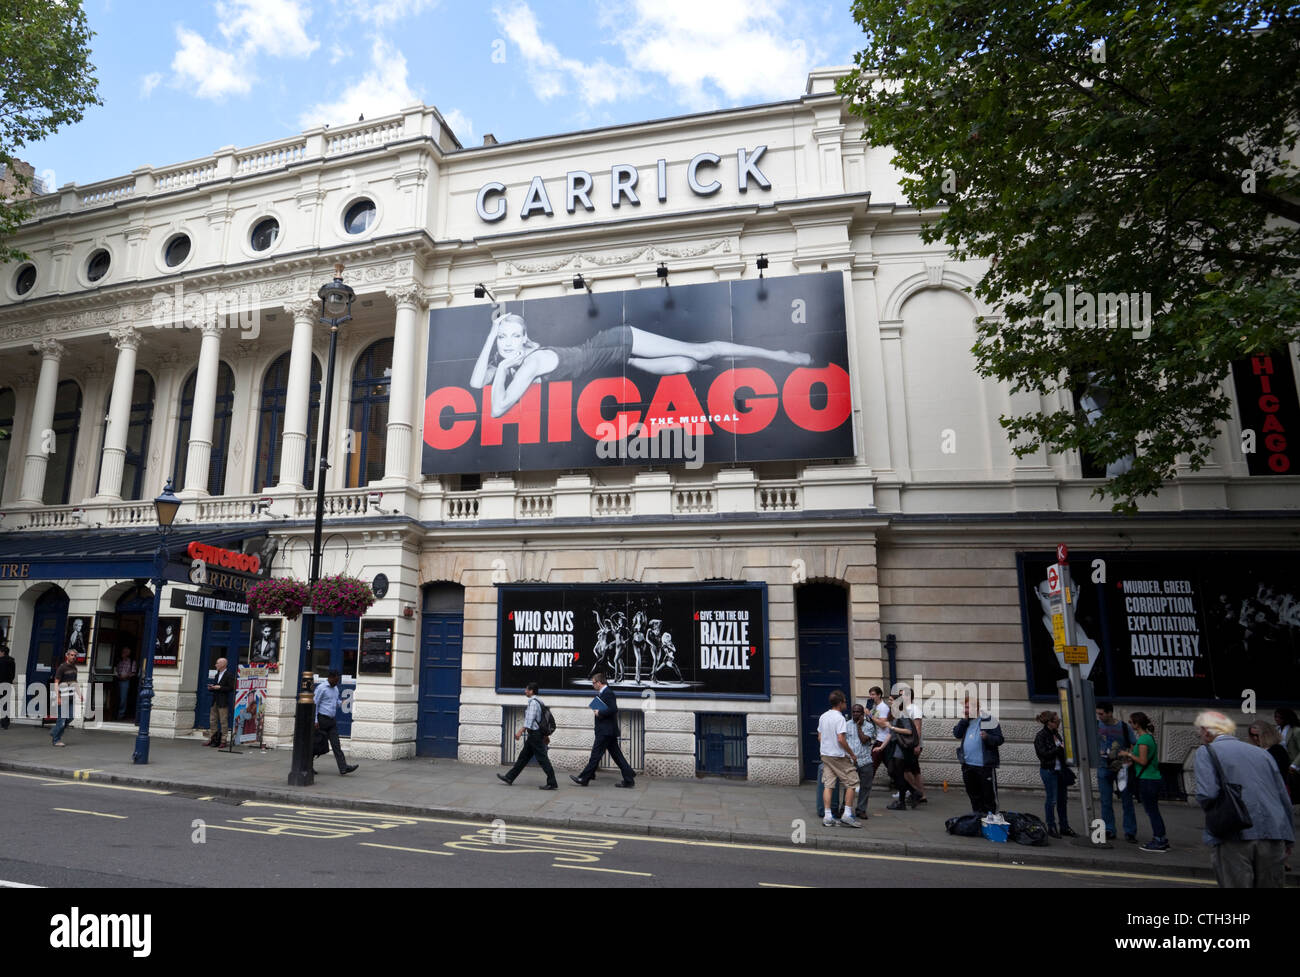 Chicago the Musical billboard at The Garrick Theatre, Charing Cross Road, City of Westminster, London, WC2, England, - Stock Image